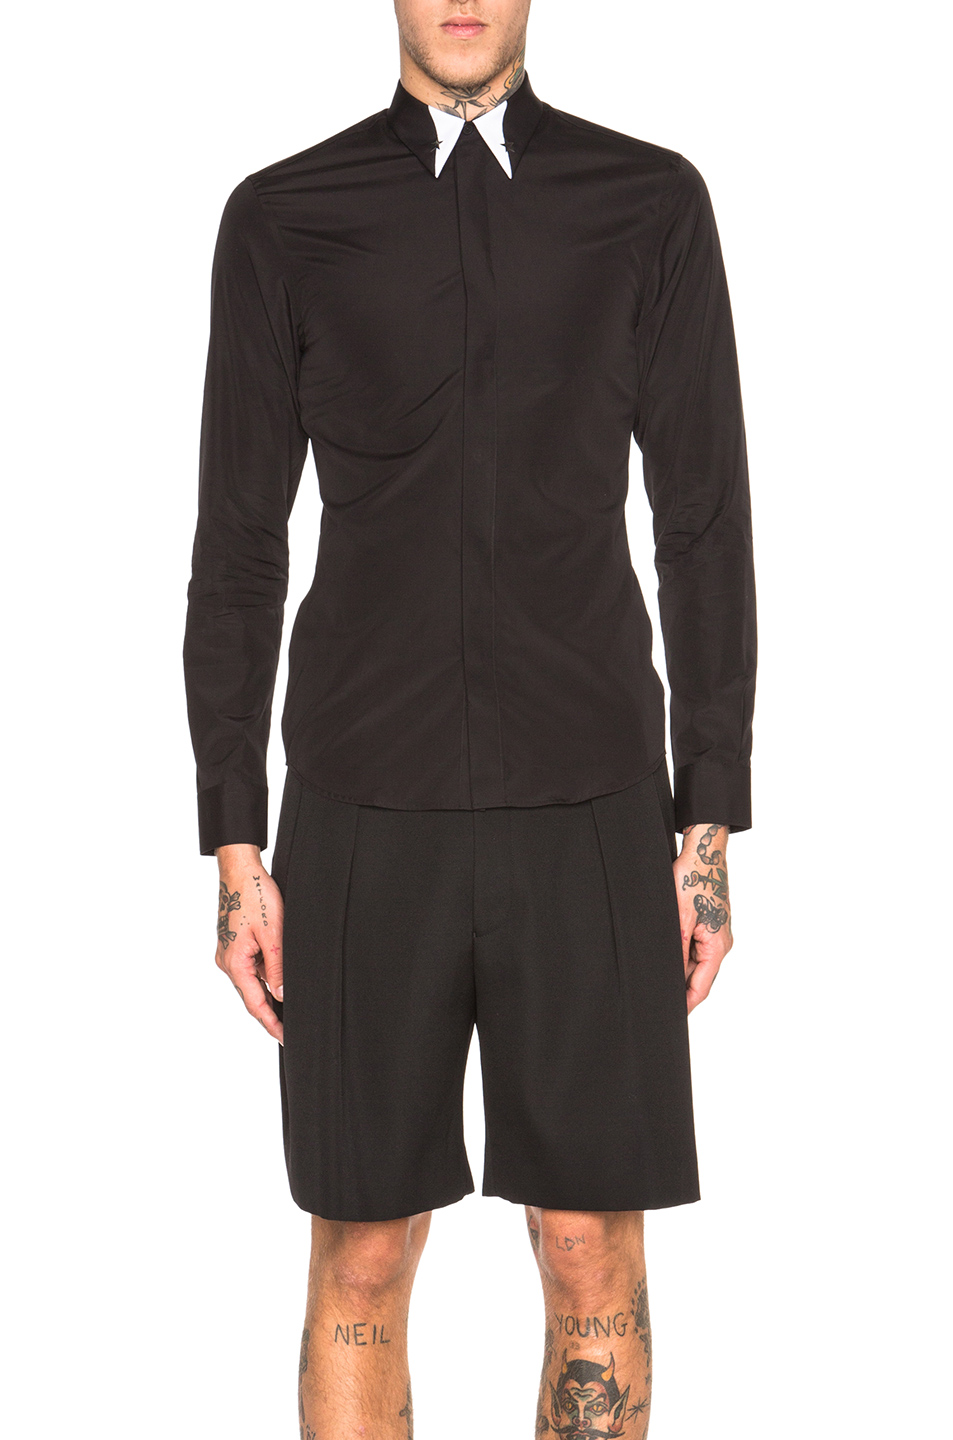 GIVENCHY Silver Star Contrast Collar Shirt in Black